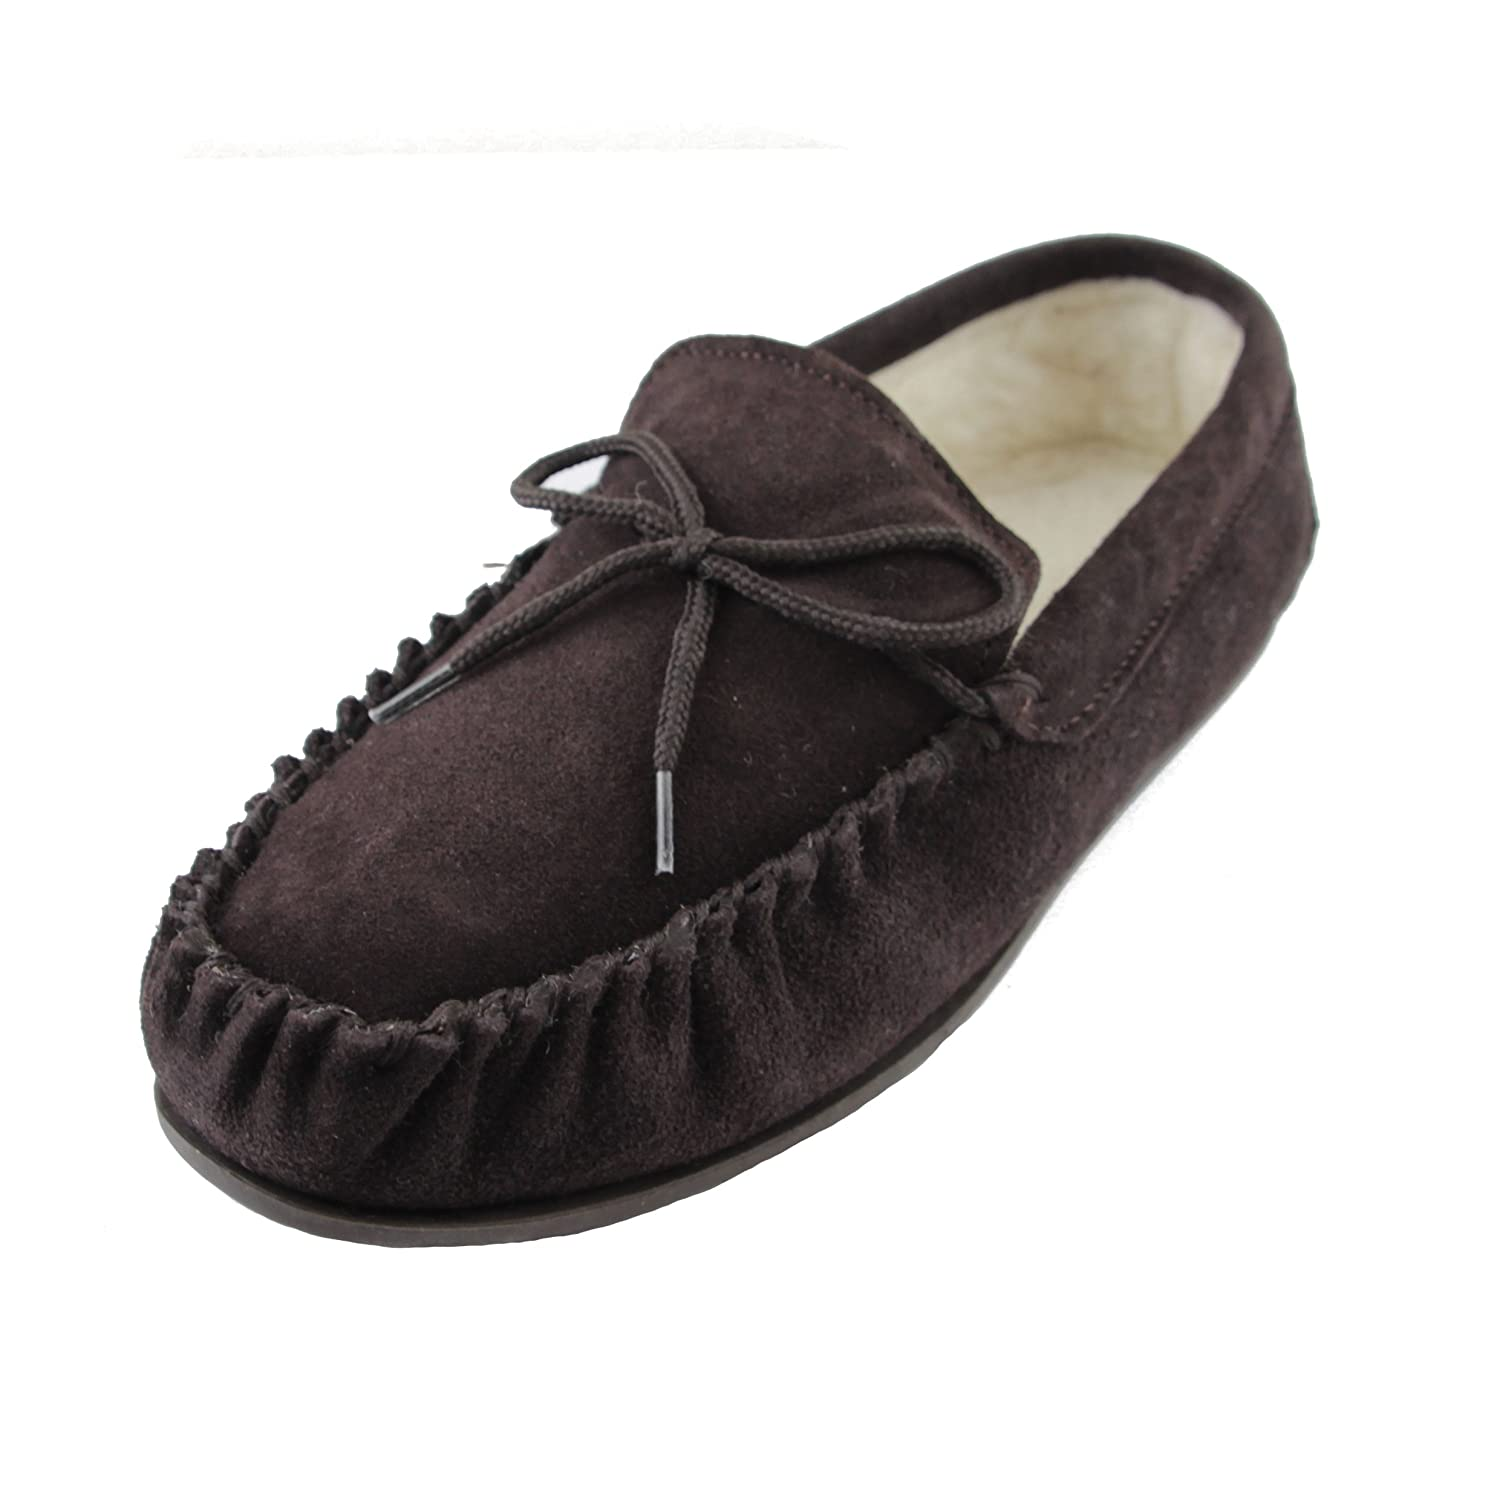 cheap sale nice cheap lower price with Deluxe Mens Sheepskin Wool Moccasin Slippers with Hard Sole - Suede Upper